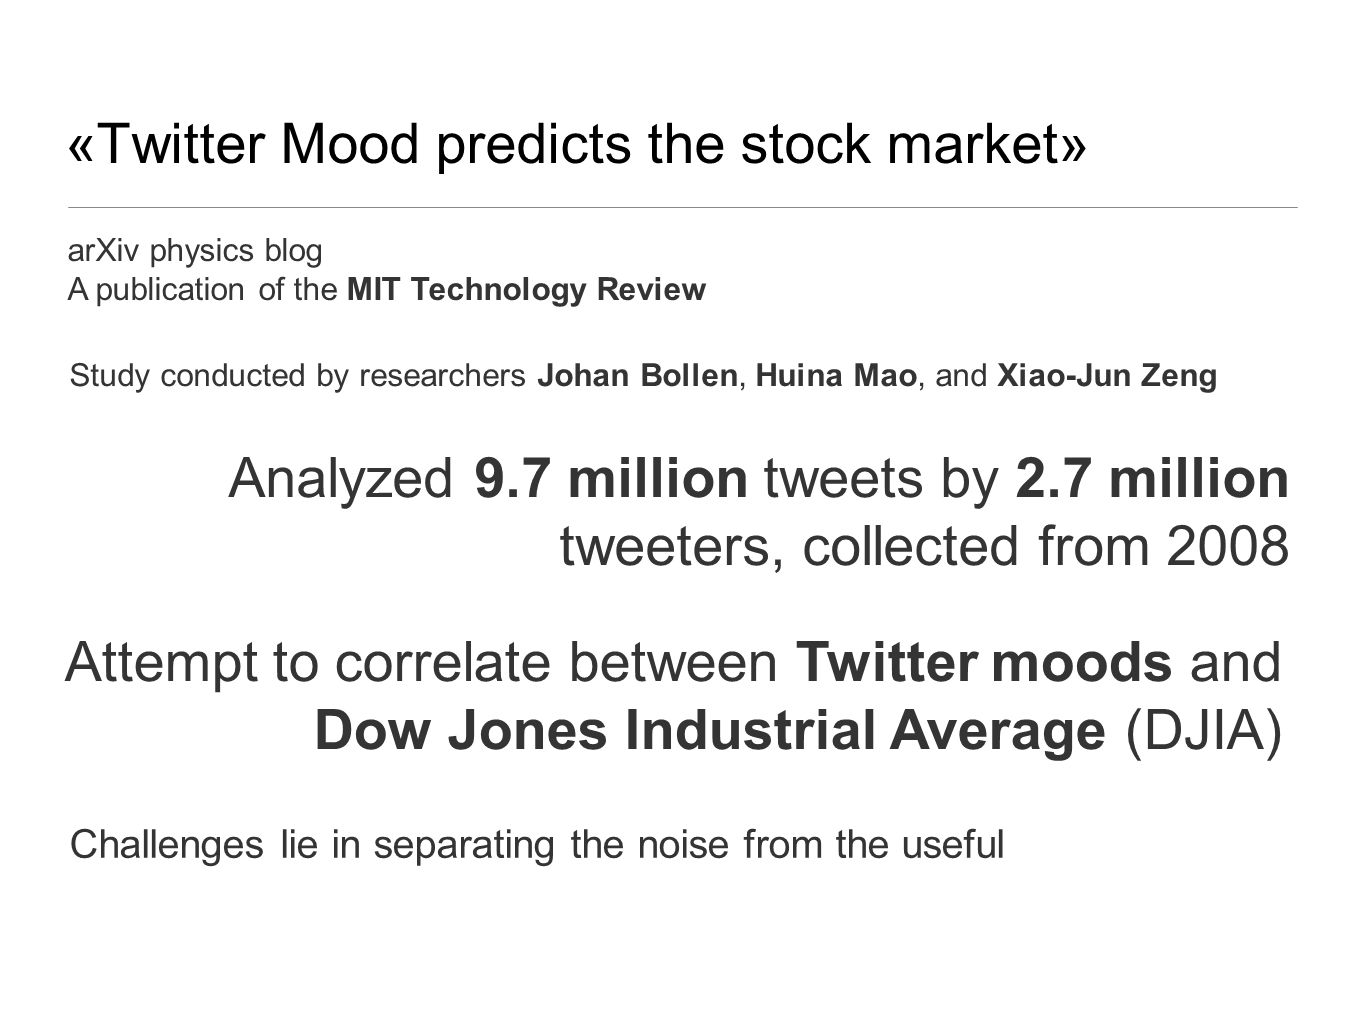 «Twitter Mood predicts the stock market» arXiv physics blog A publication of the MIT Technology Review Study conducted by researchers Johan Bollen, Huina Mao, and Xiao-Jun Zeng Analyzed 9.7 million tweets by 2.7 million tweeters, collected from 2008 Attempt to correlate between Twitter moods and Dow Jones Industrial Average (DJIA) Challenges lie in separating the noise from the useful